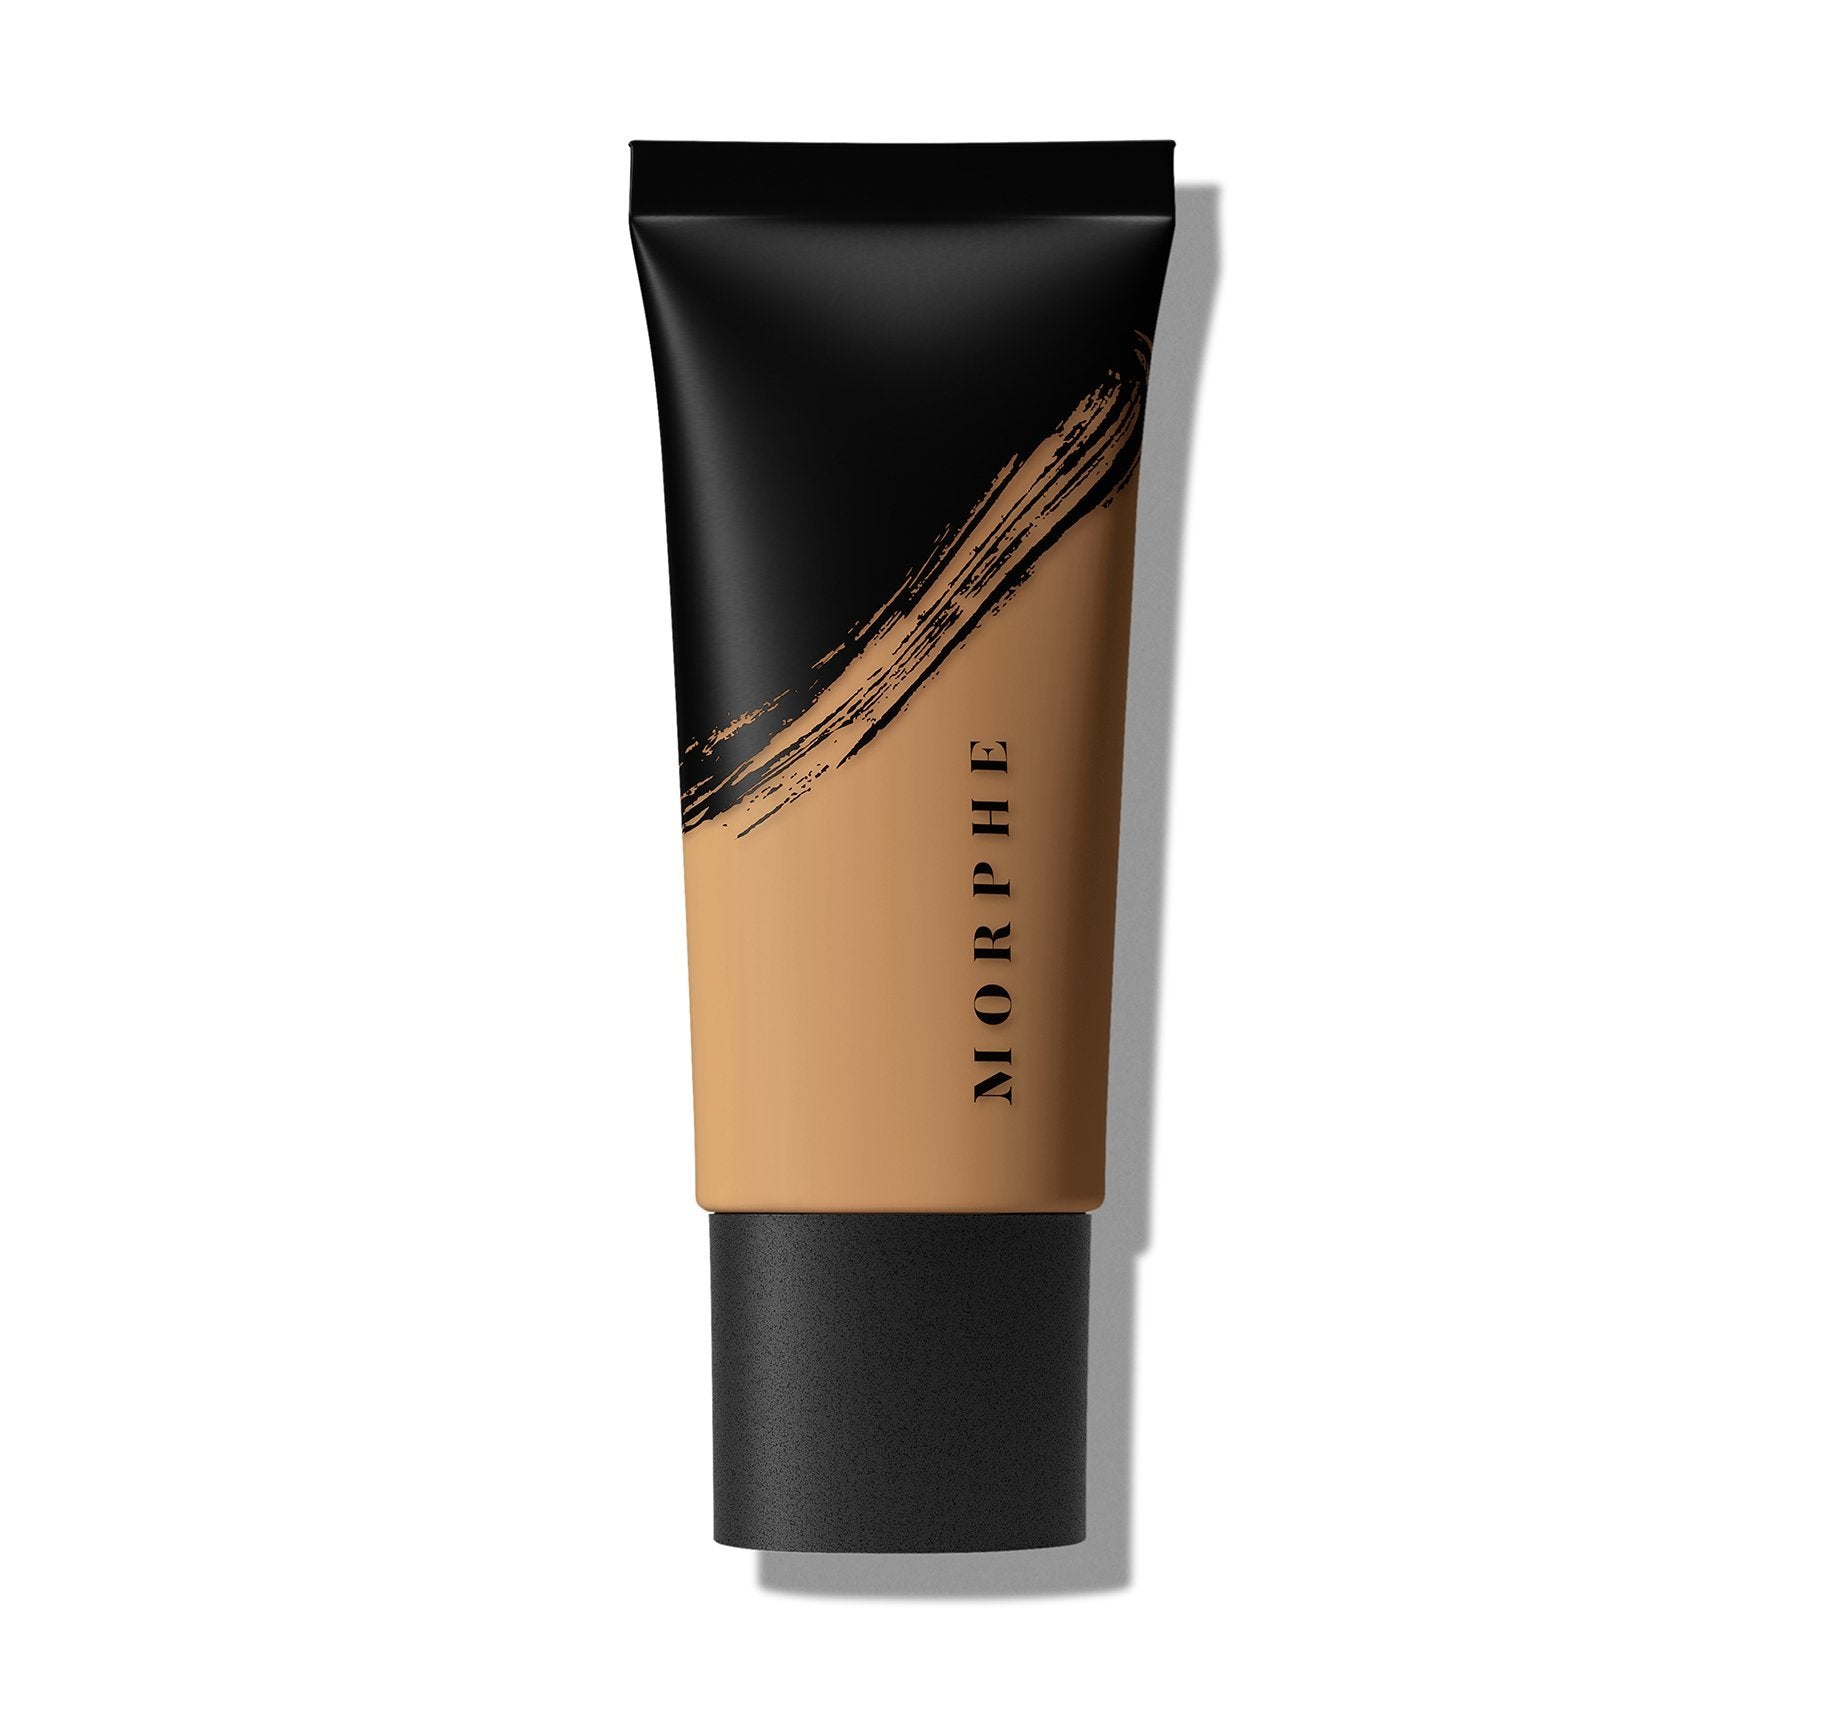 FLUIDITY FULL-COVERAGE FOUNDATION - F2.60, view larger image